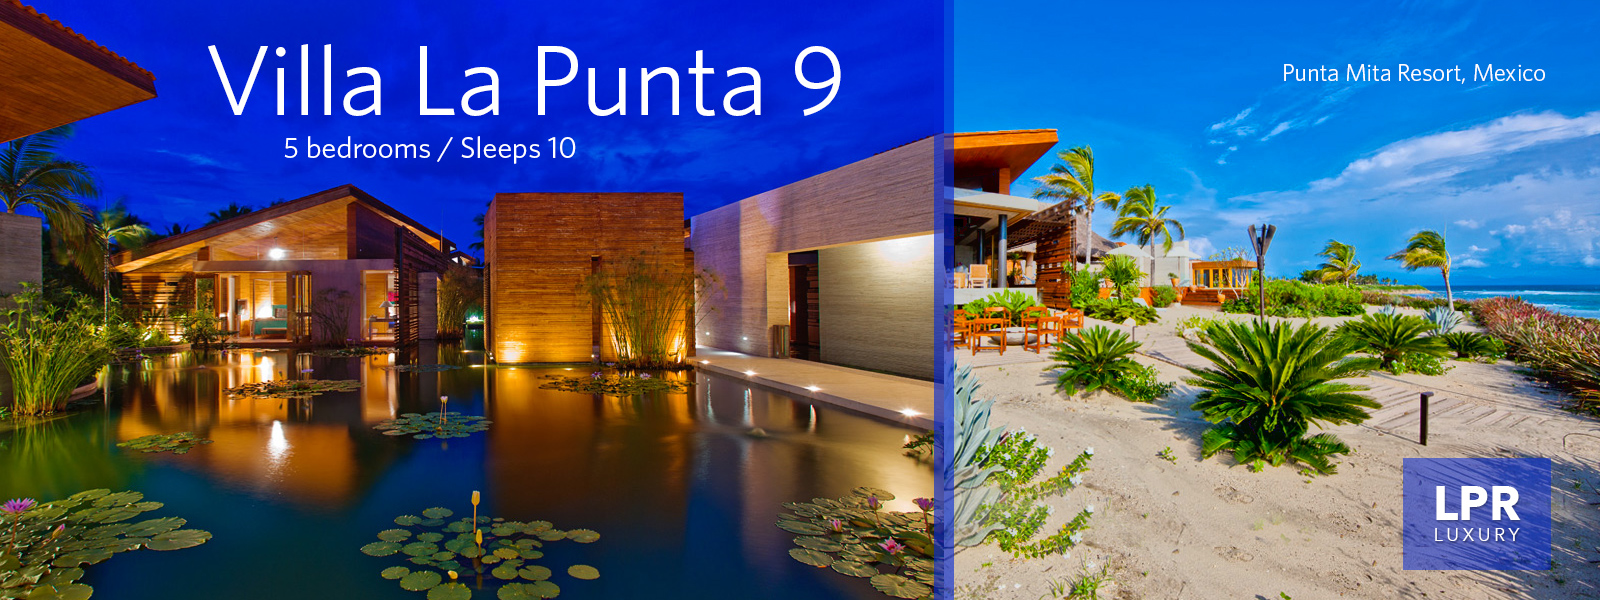 beachy keen - punta mita real estate featured in robb report